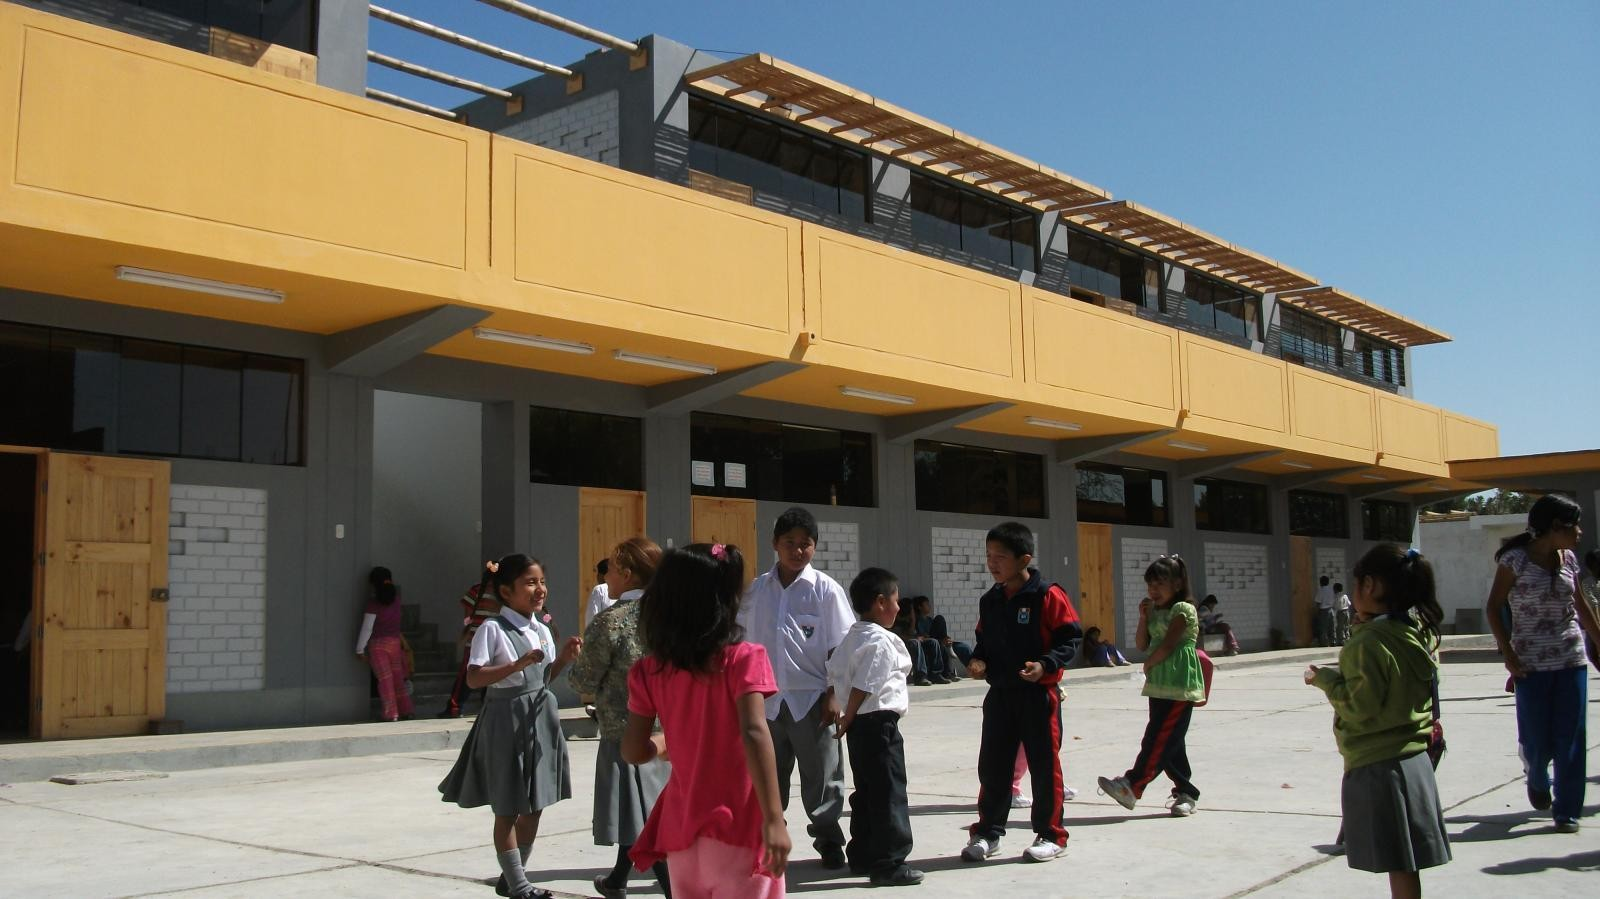 Francisco Perez Anampa School. Image Courtesy of Architecture for Humanity